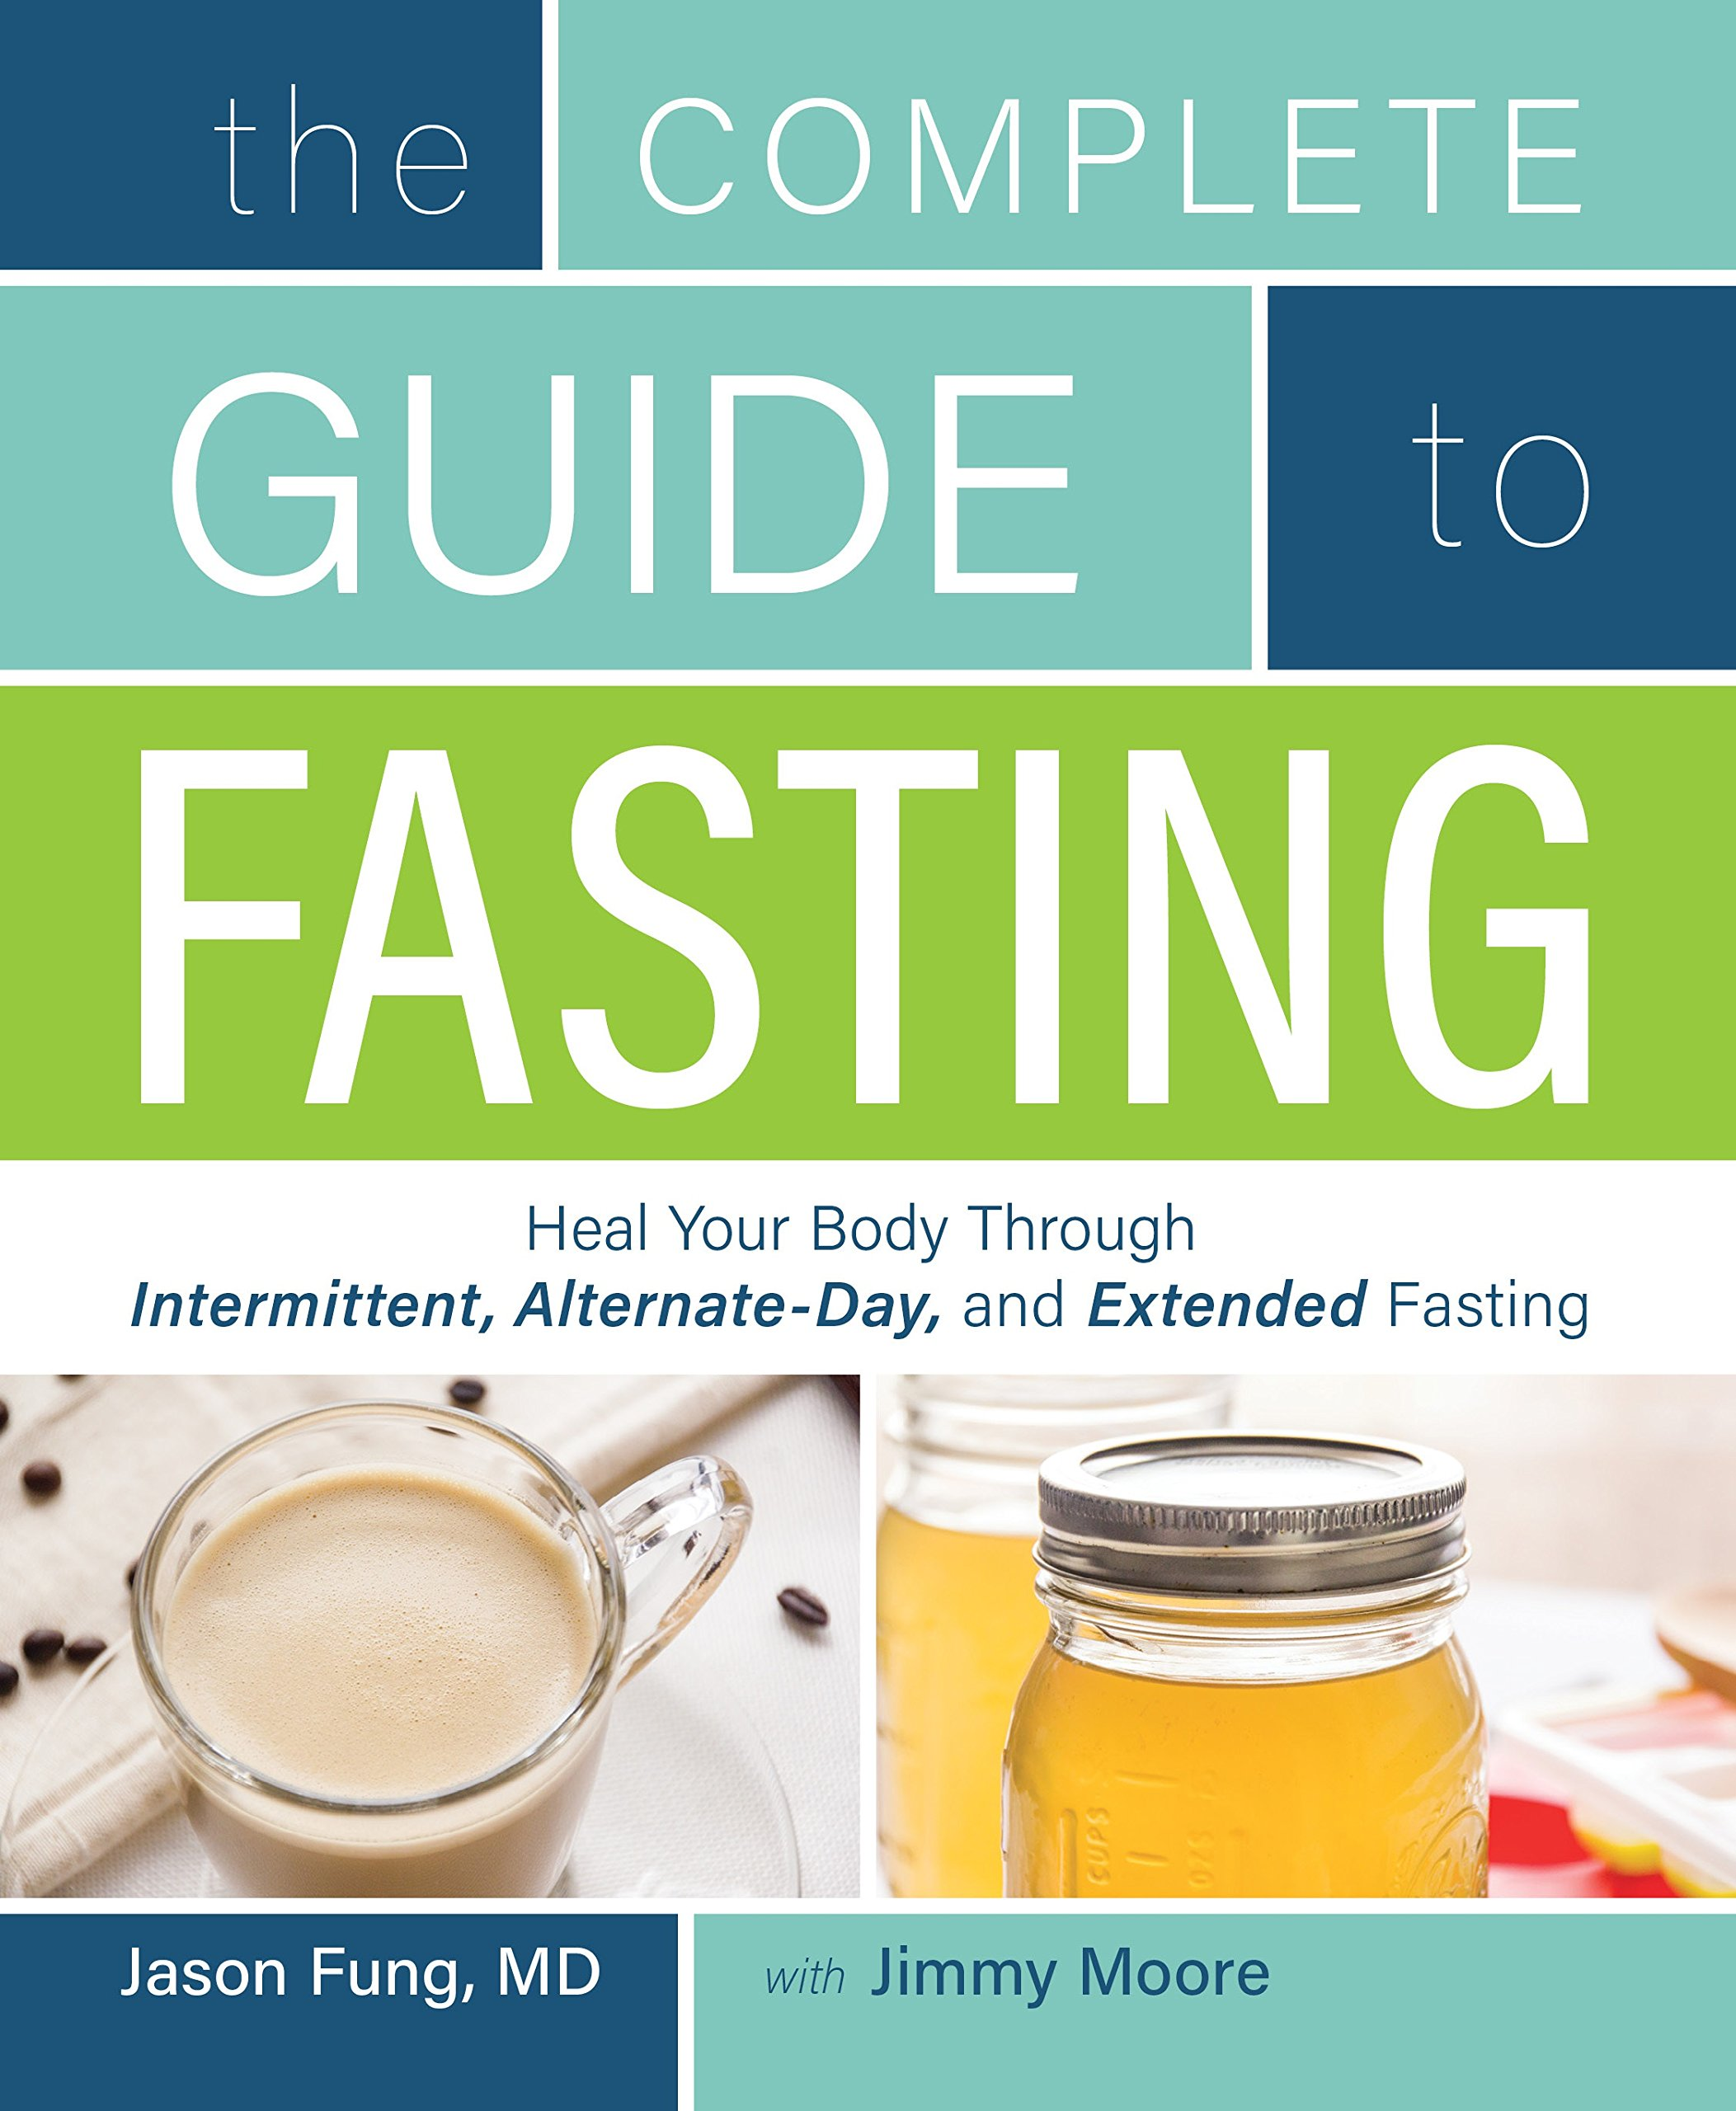 The Complete Guide to Fasting: Heal Your Body Through Intermittent, Alternate-Day, and Extended Fasting by Victory Belt Publishing